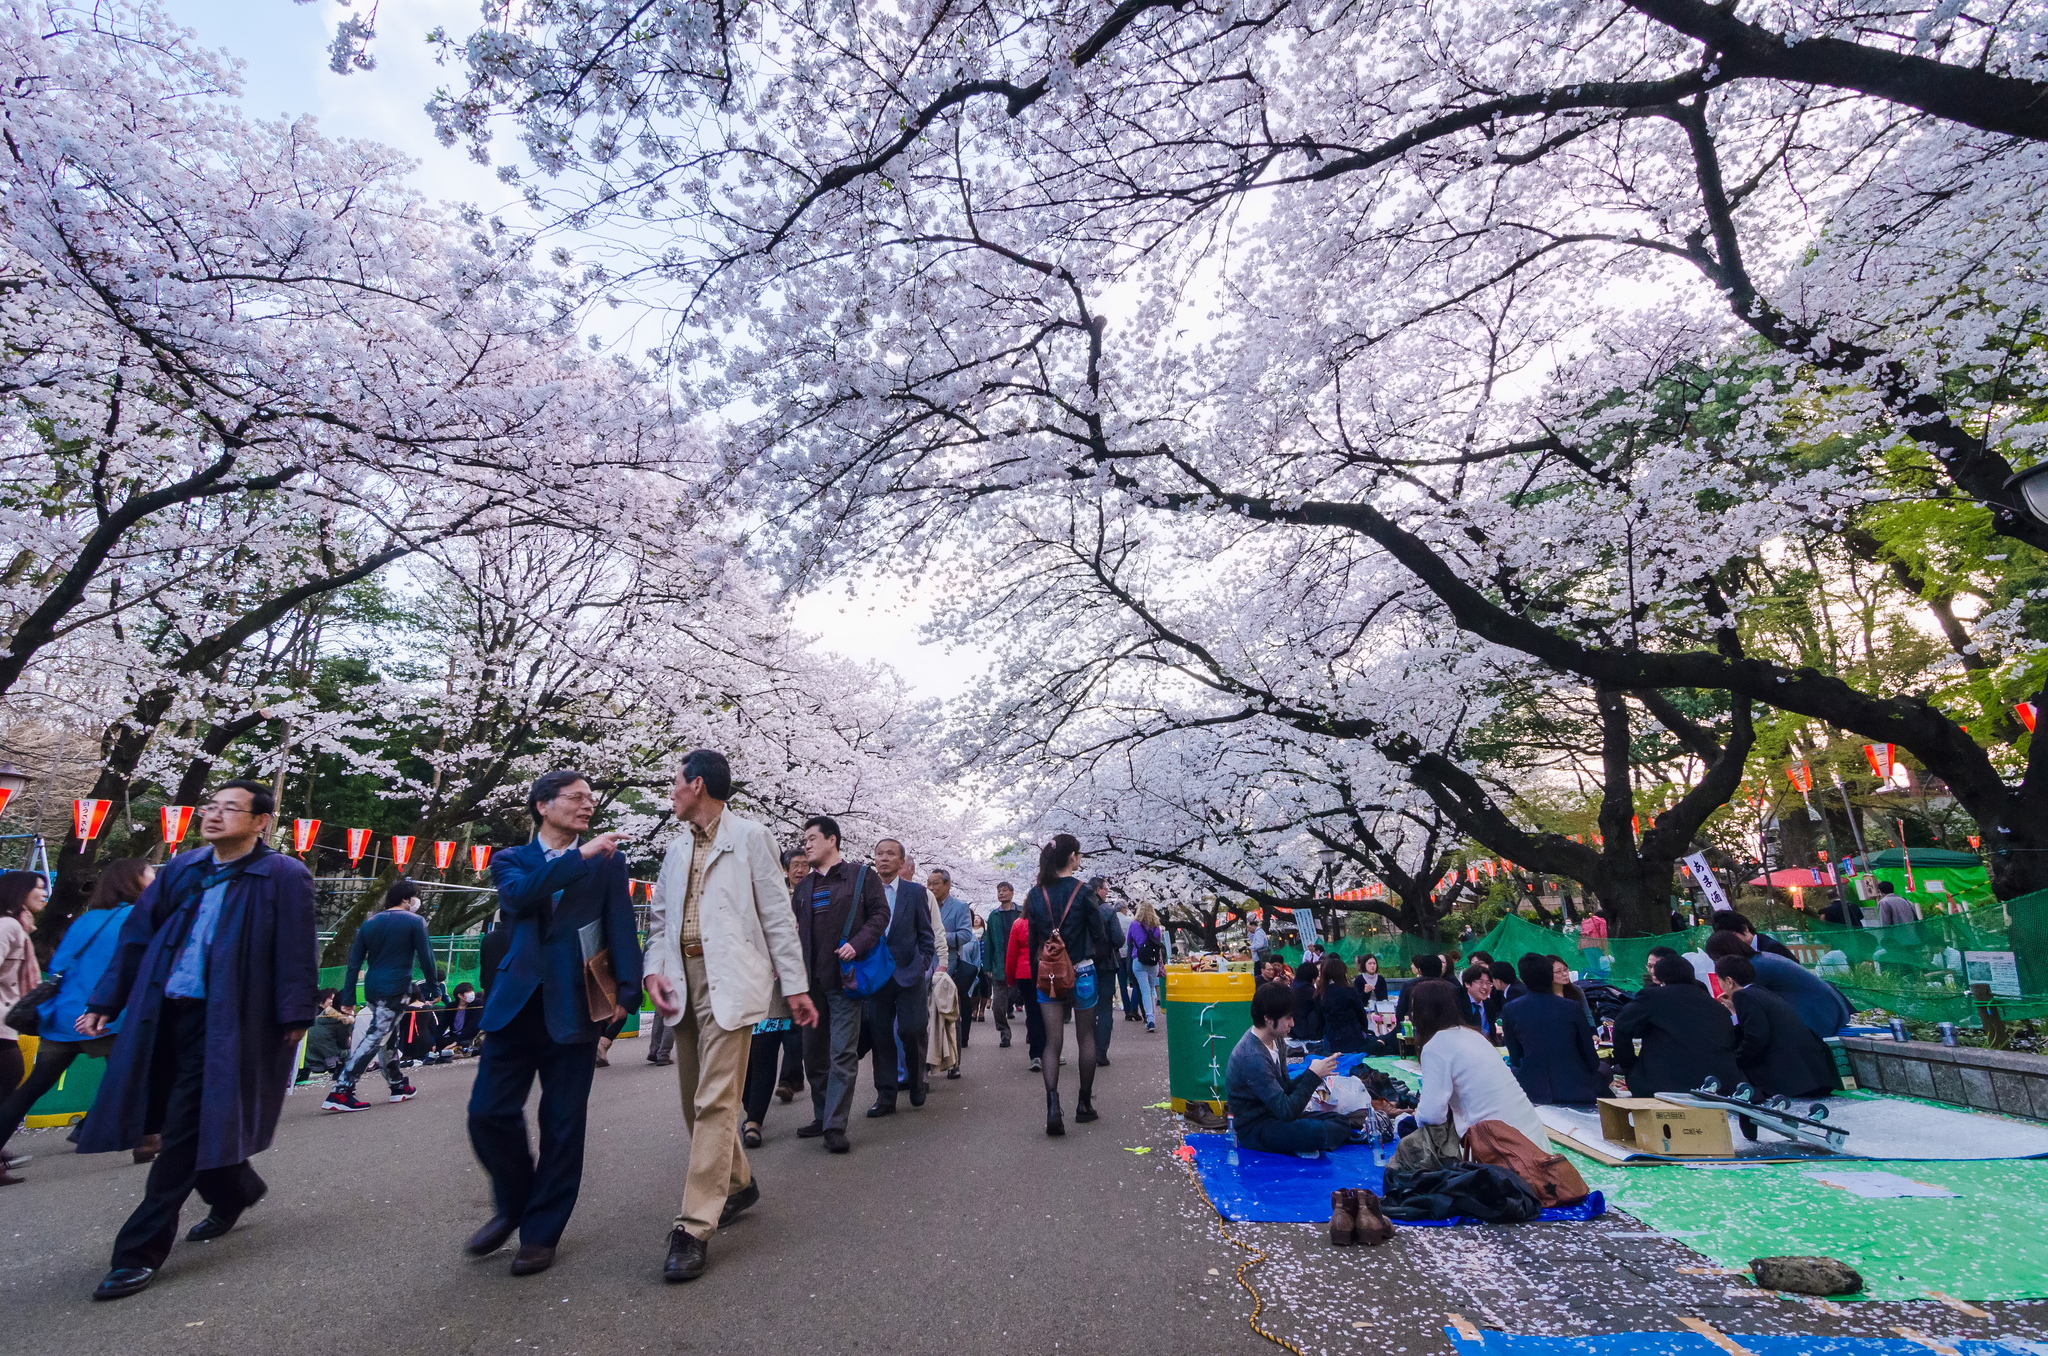 Crowds enjoying the blooming cherry blossom trees in Ueno Park, Tokyo.